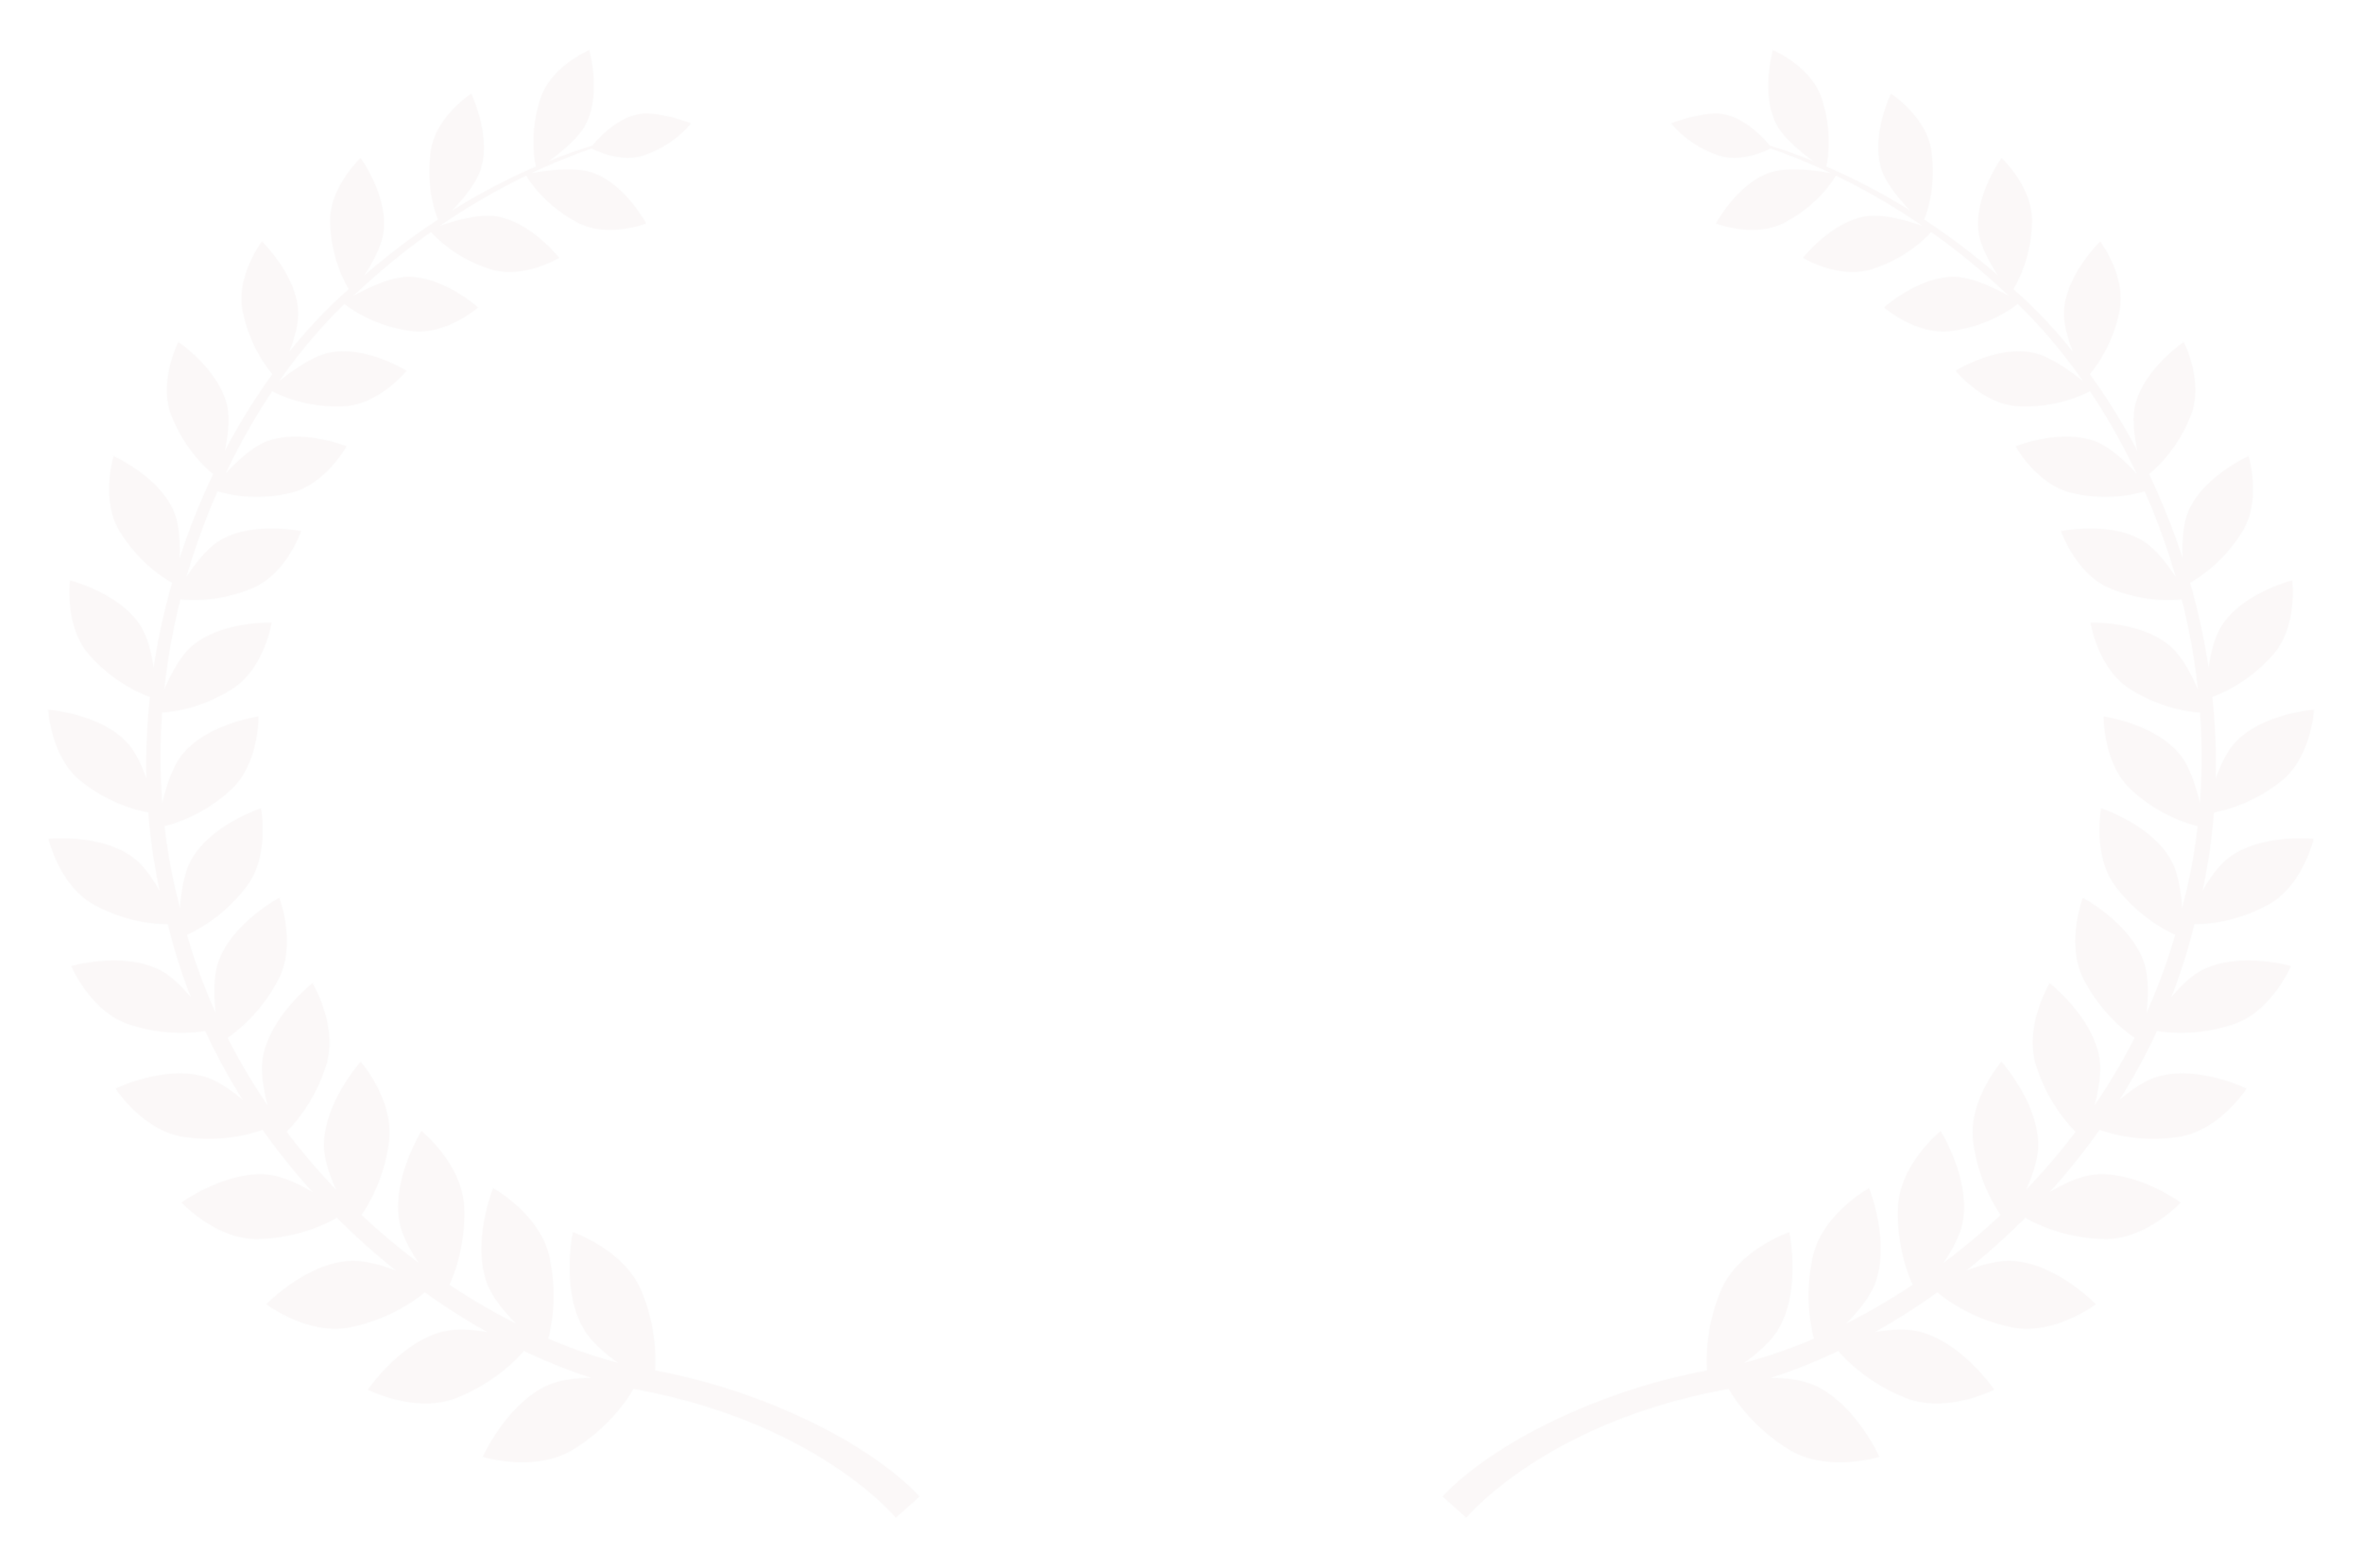 OFFICIALSELECTION-MotorCityNightmaresInternationalFilmFestival-2018.png